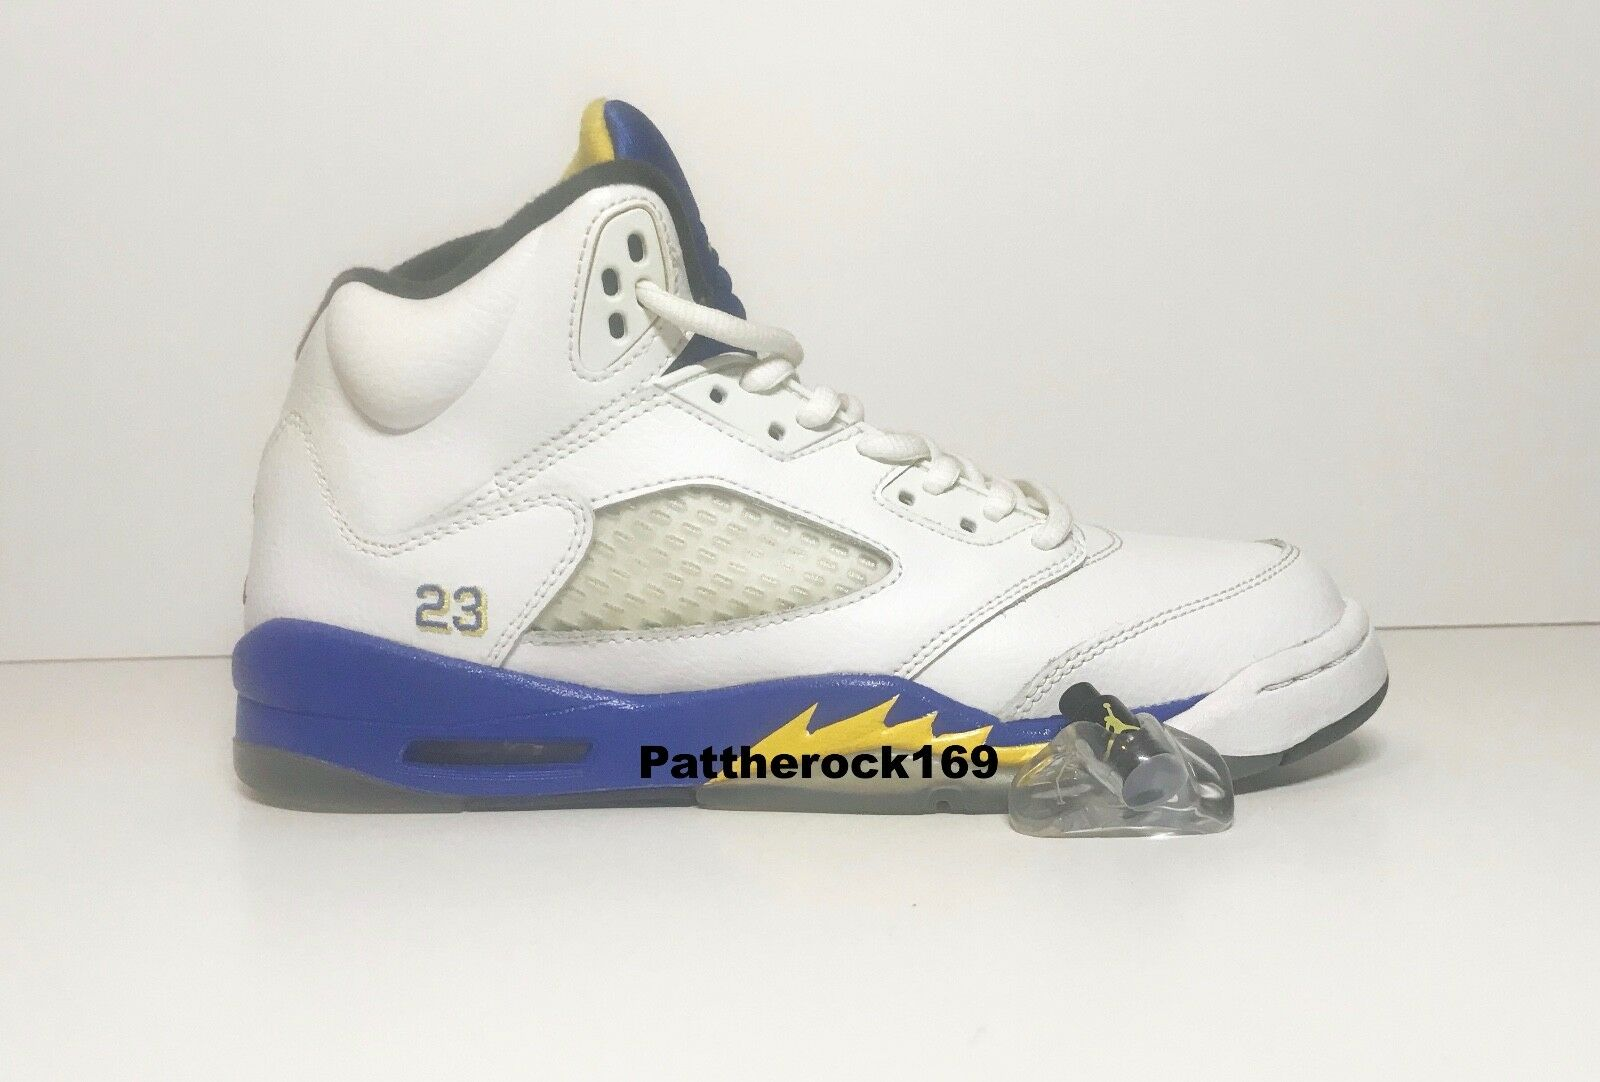 AIR JORDAN 5 RETRO  LANEY  Size 6.5 Y WHT VRSTY MZ-VRSTY RYL-BLK- JORDAN LANEY 5